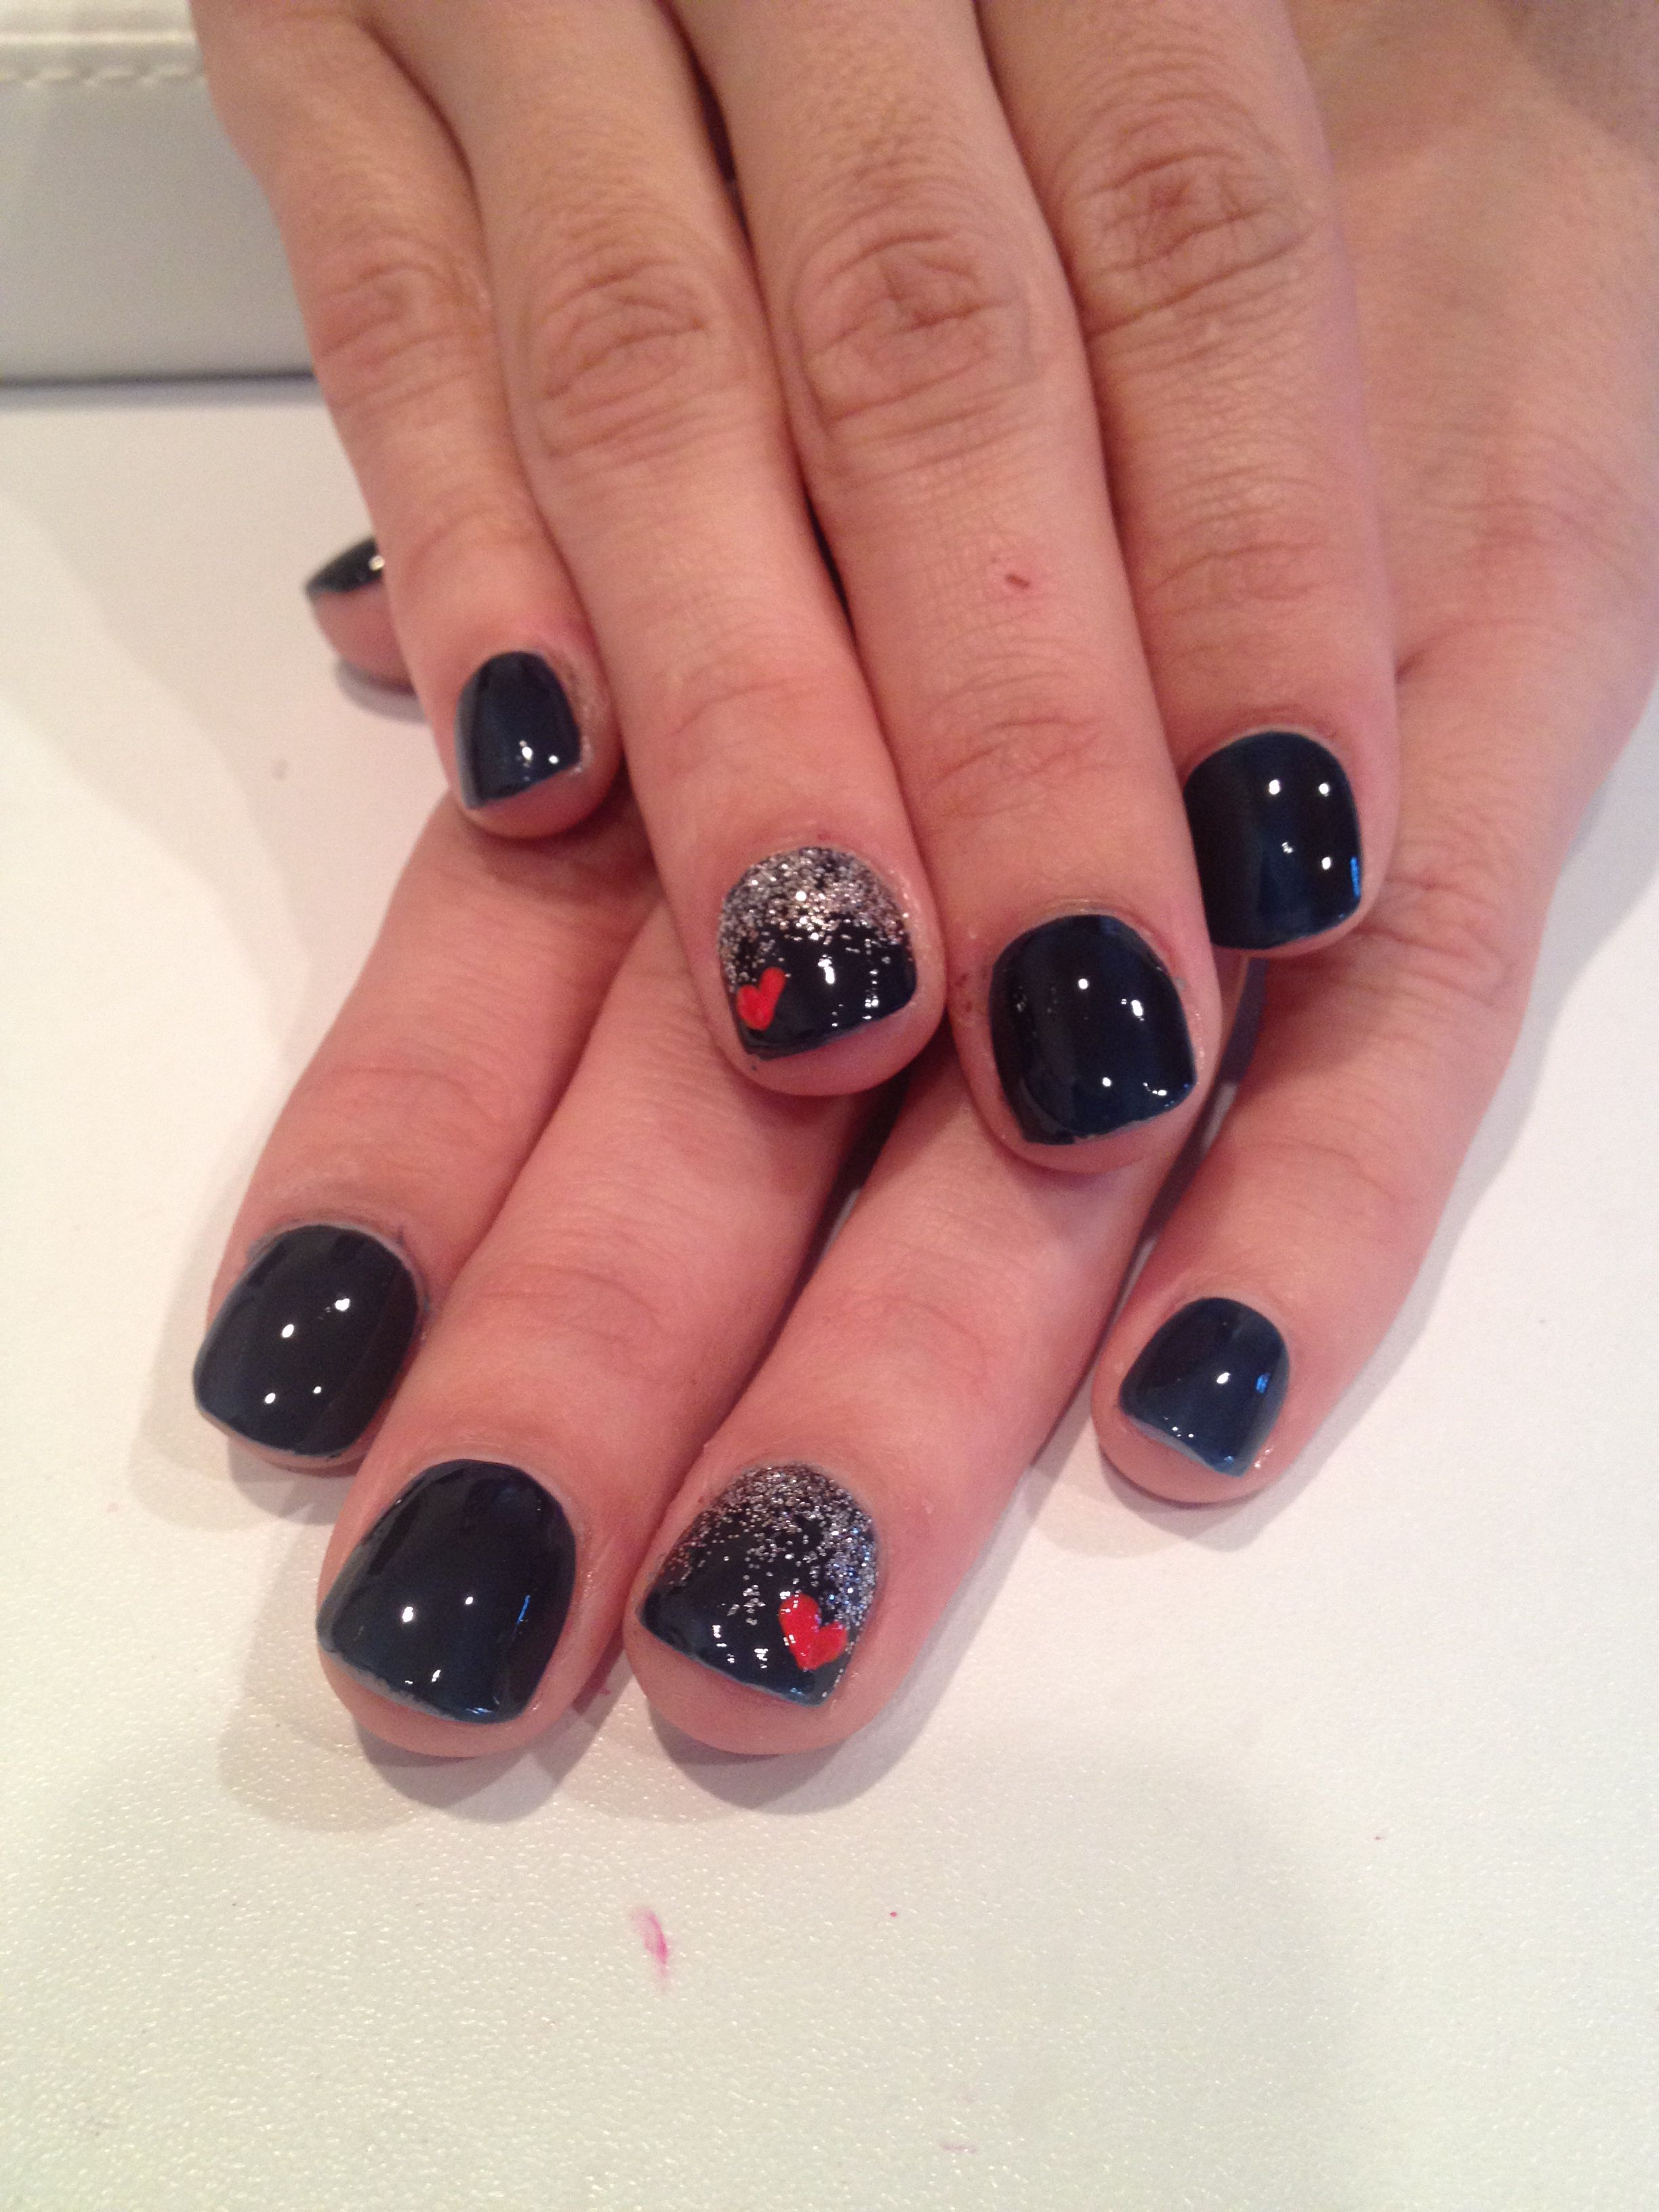 Acrylic Overlay, No Tip | Nails | Pinterest | Overlay, Manicure and ...